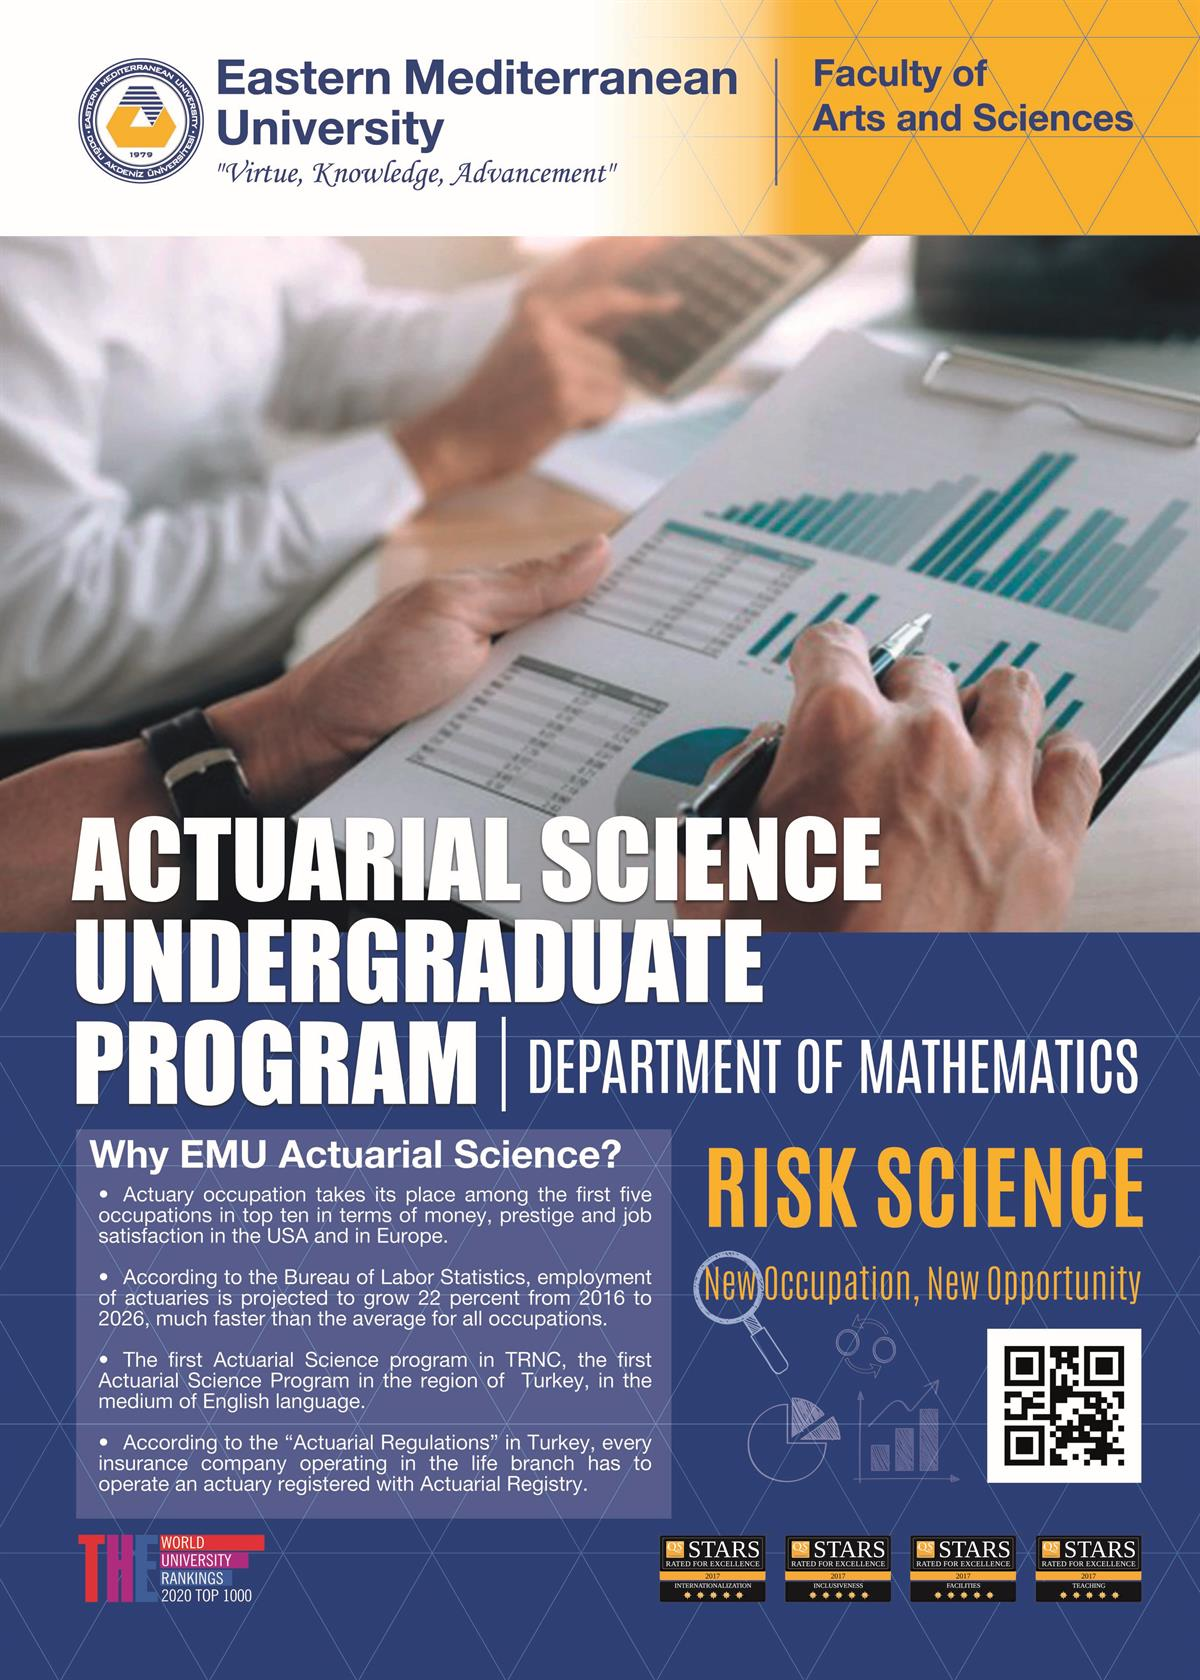 Actuarial Science Undergraduate Program